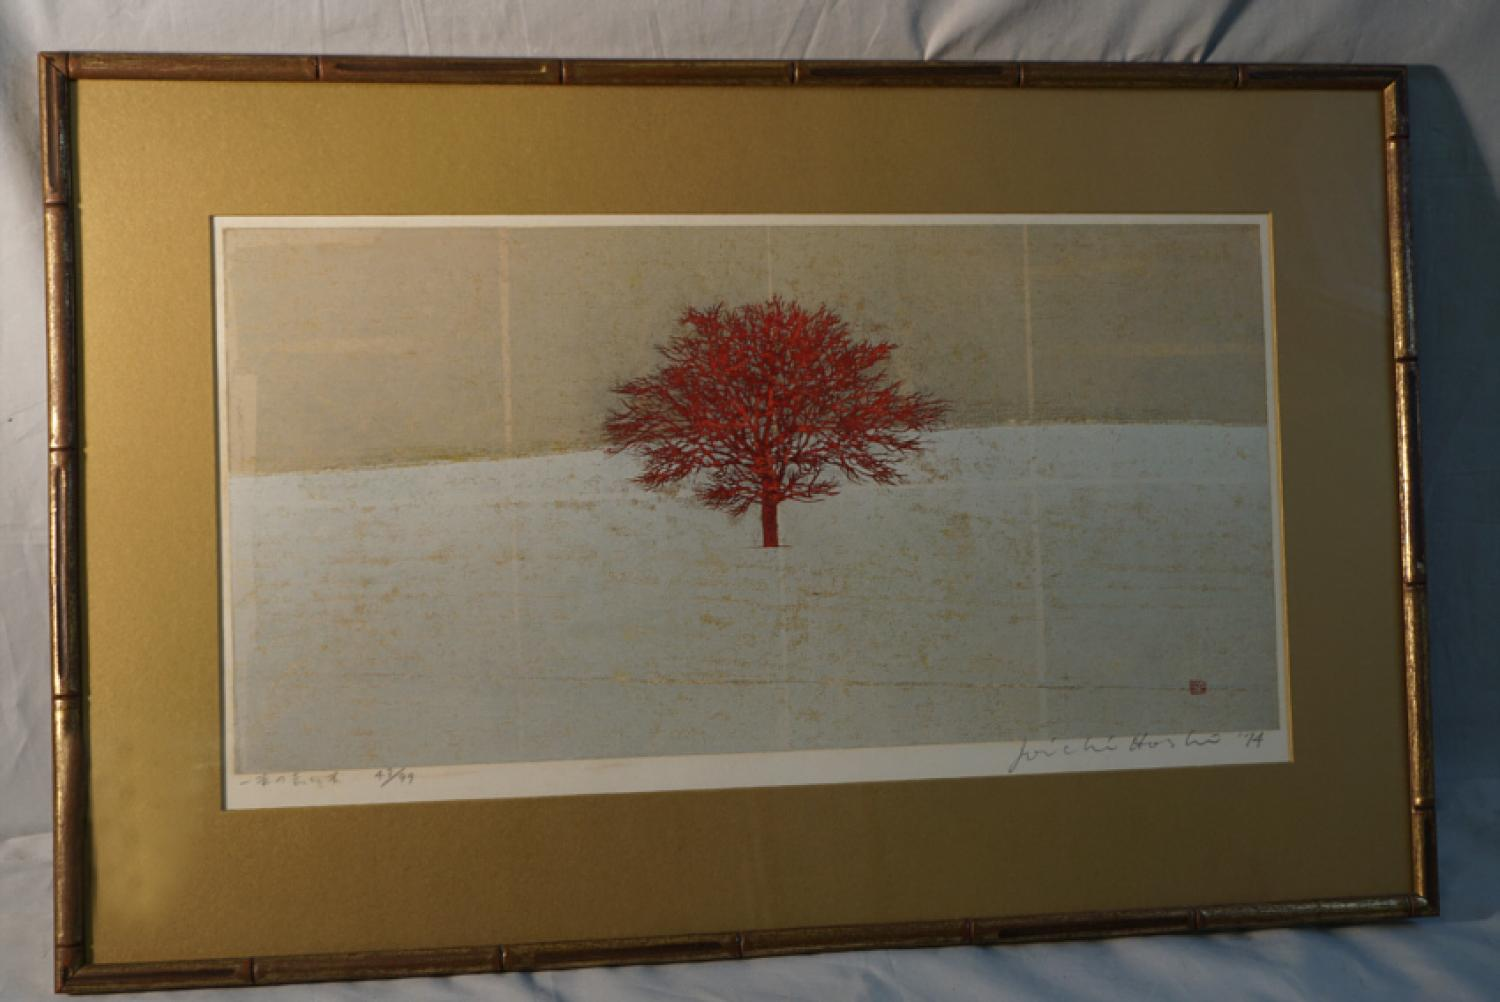 Joichi Hoshi Japanese wood cut print of tree dated 1974